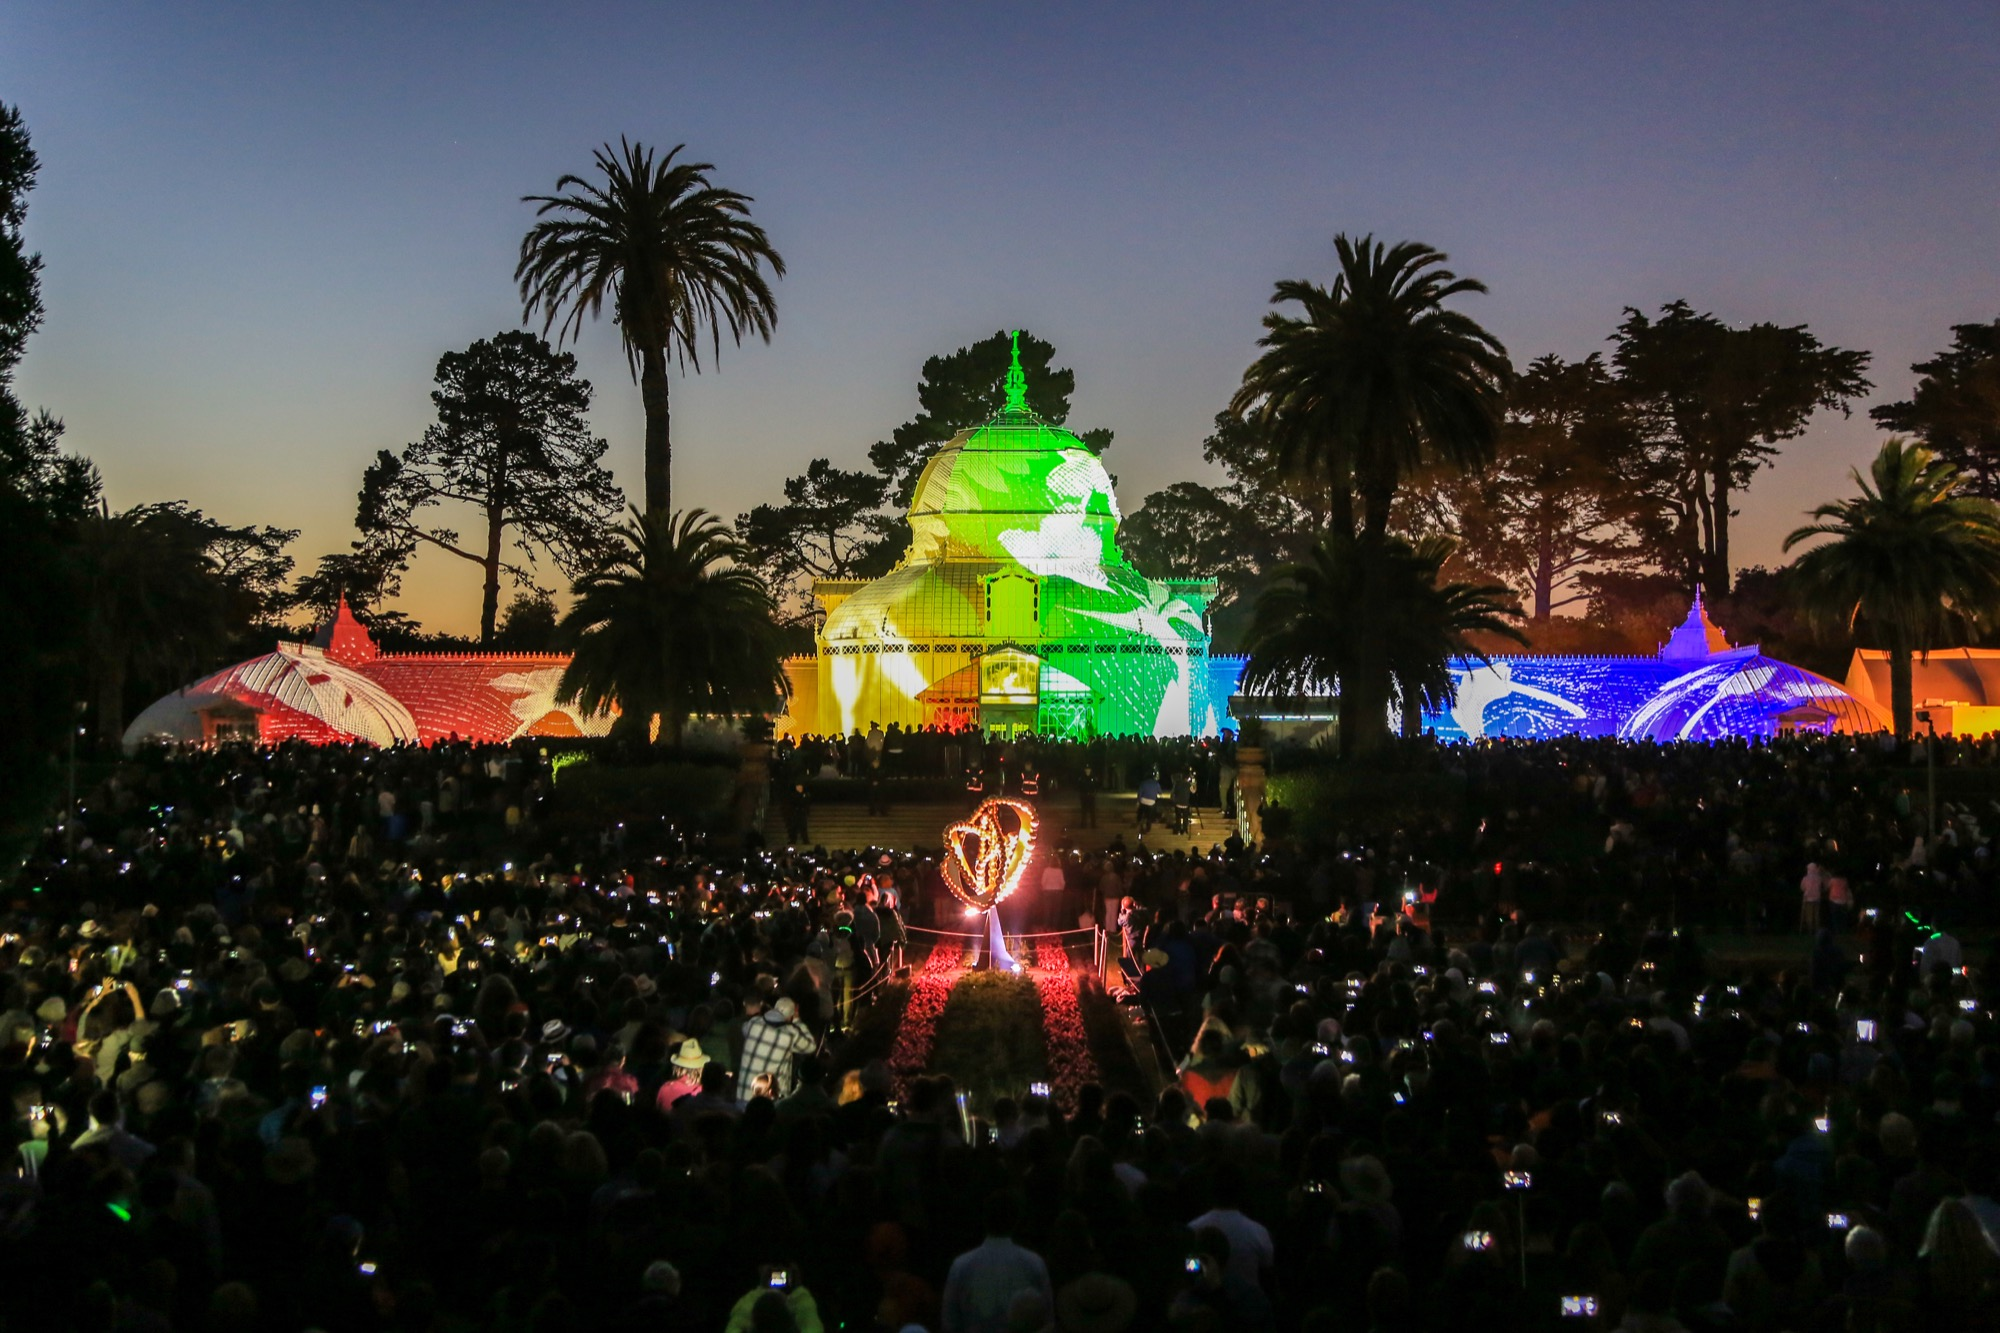 Free Cheap Sf >> Conservatory Lighting & Free Summer Solstice Concert | Golden Gate Park